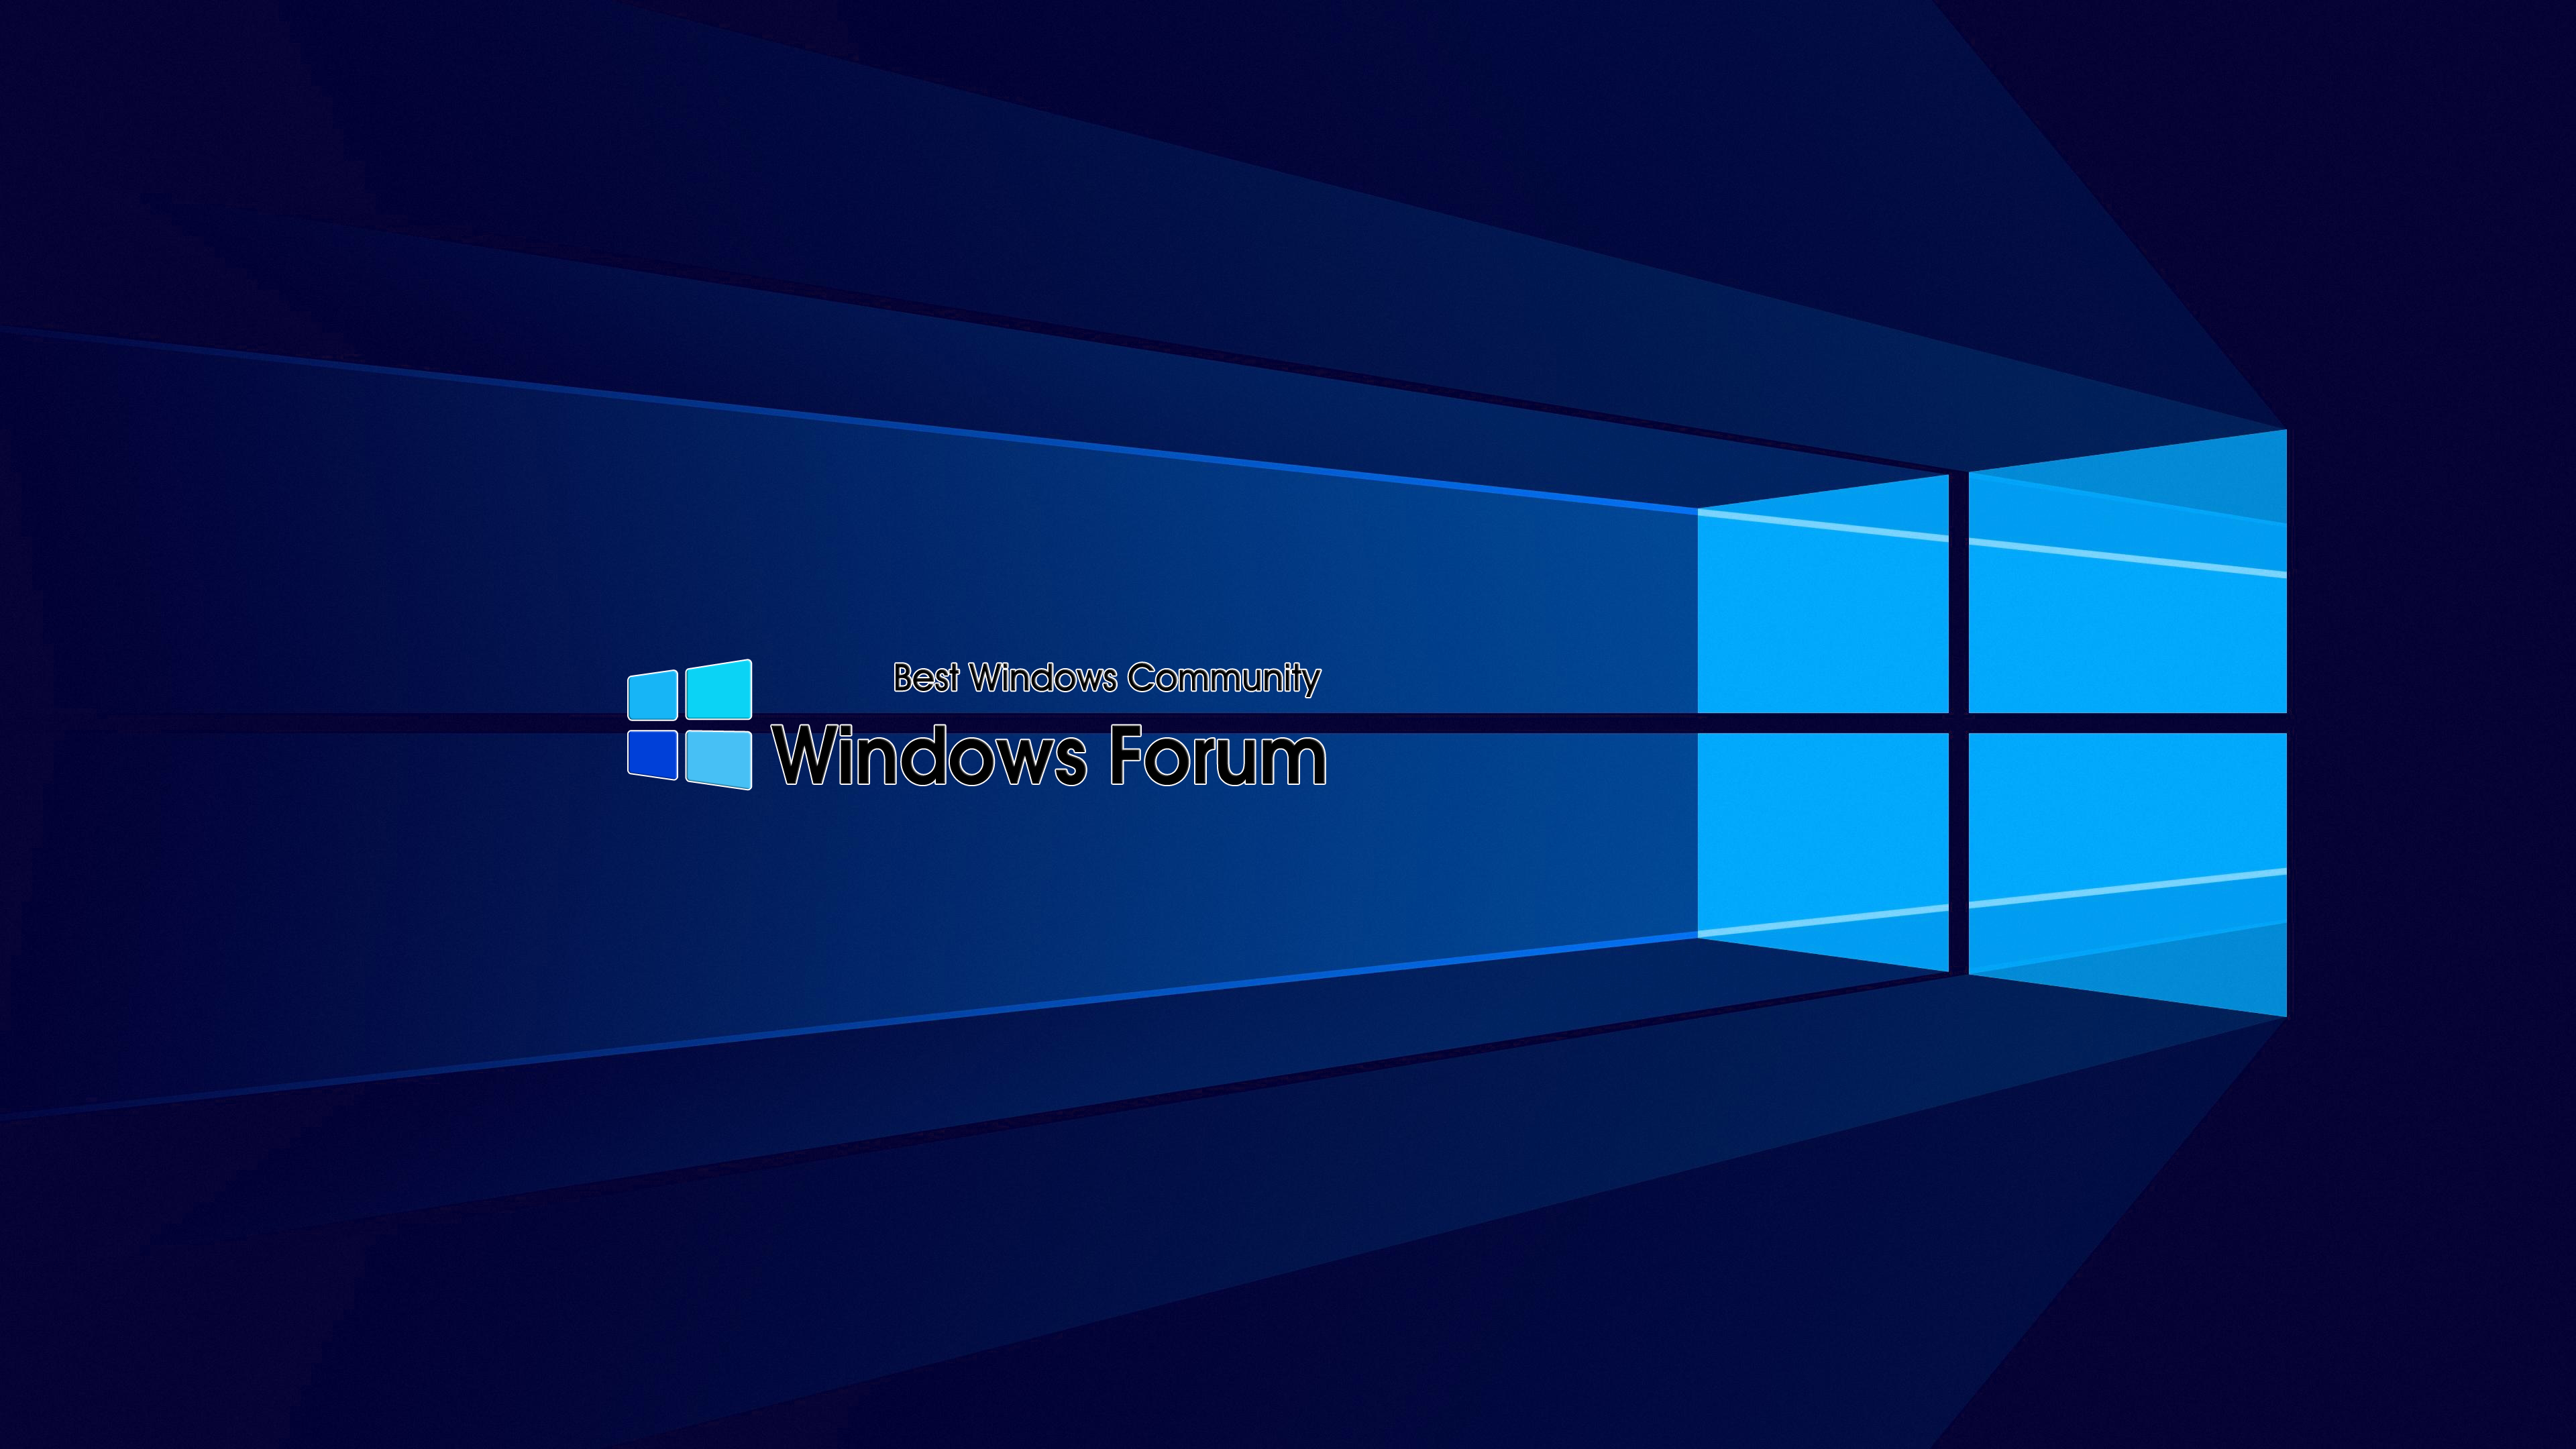 Windows_Forum_Logo_6.png